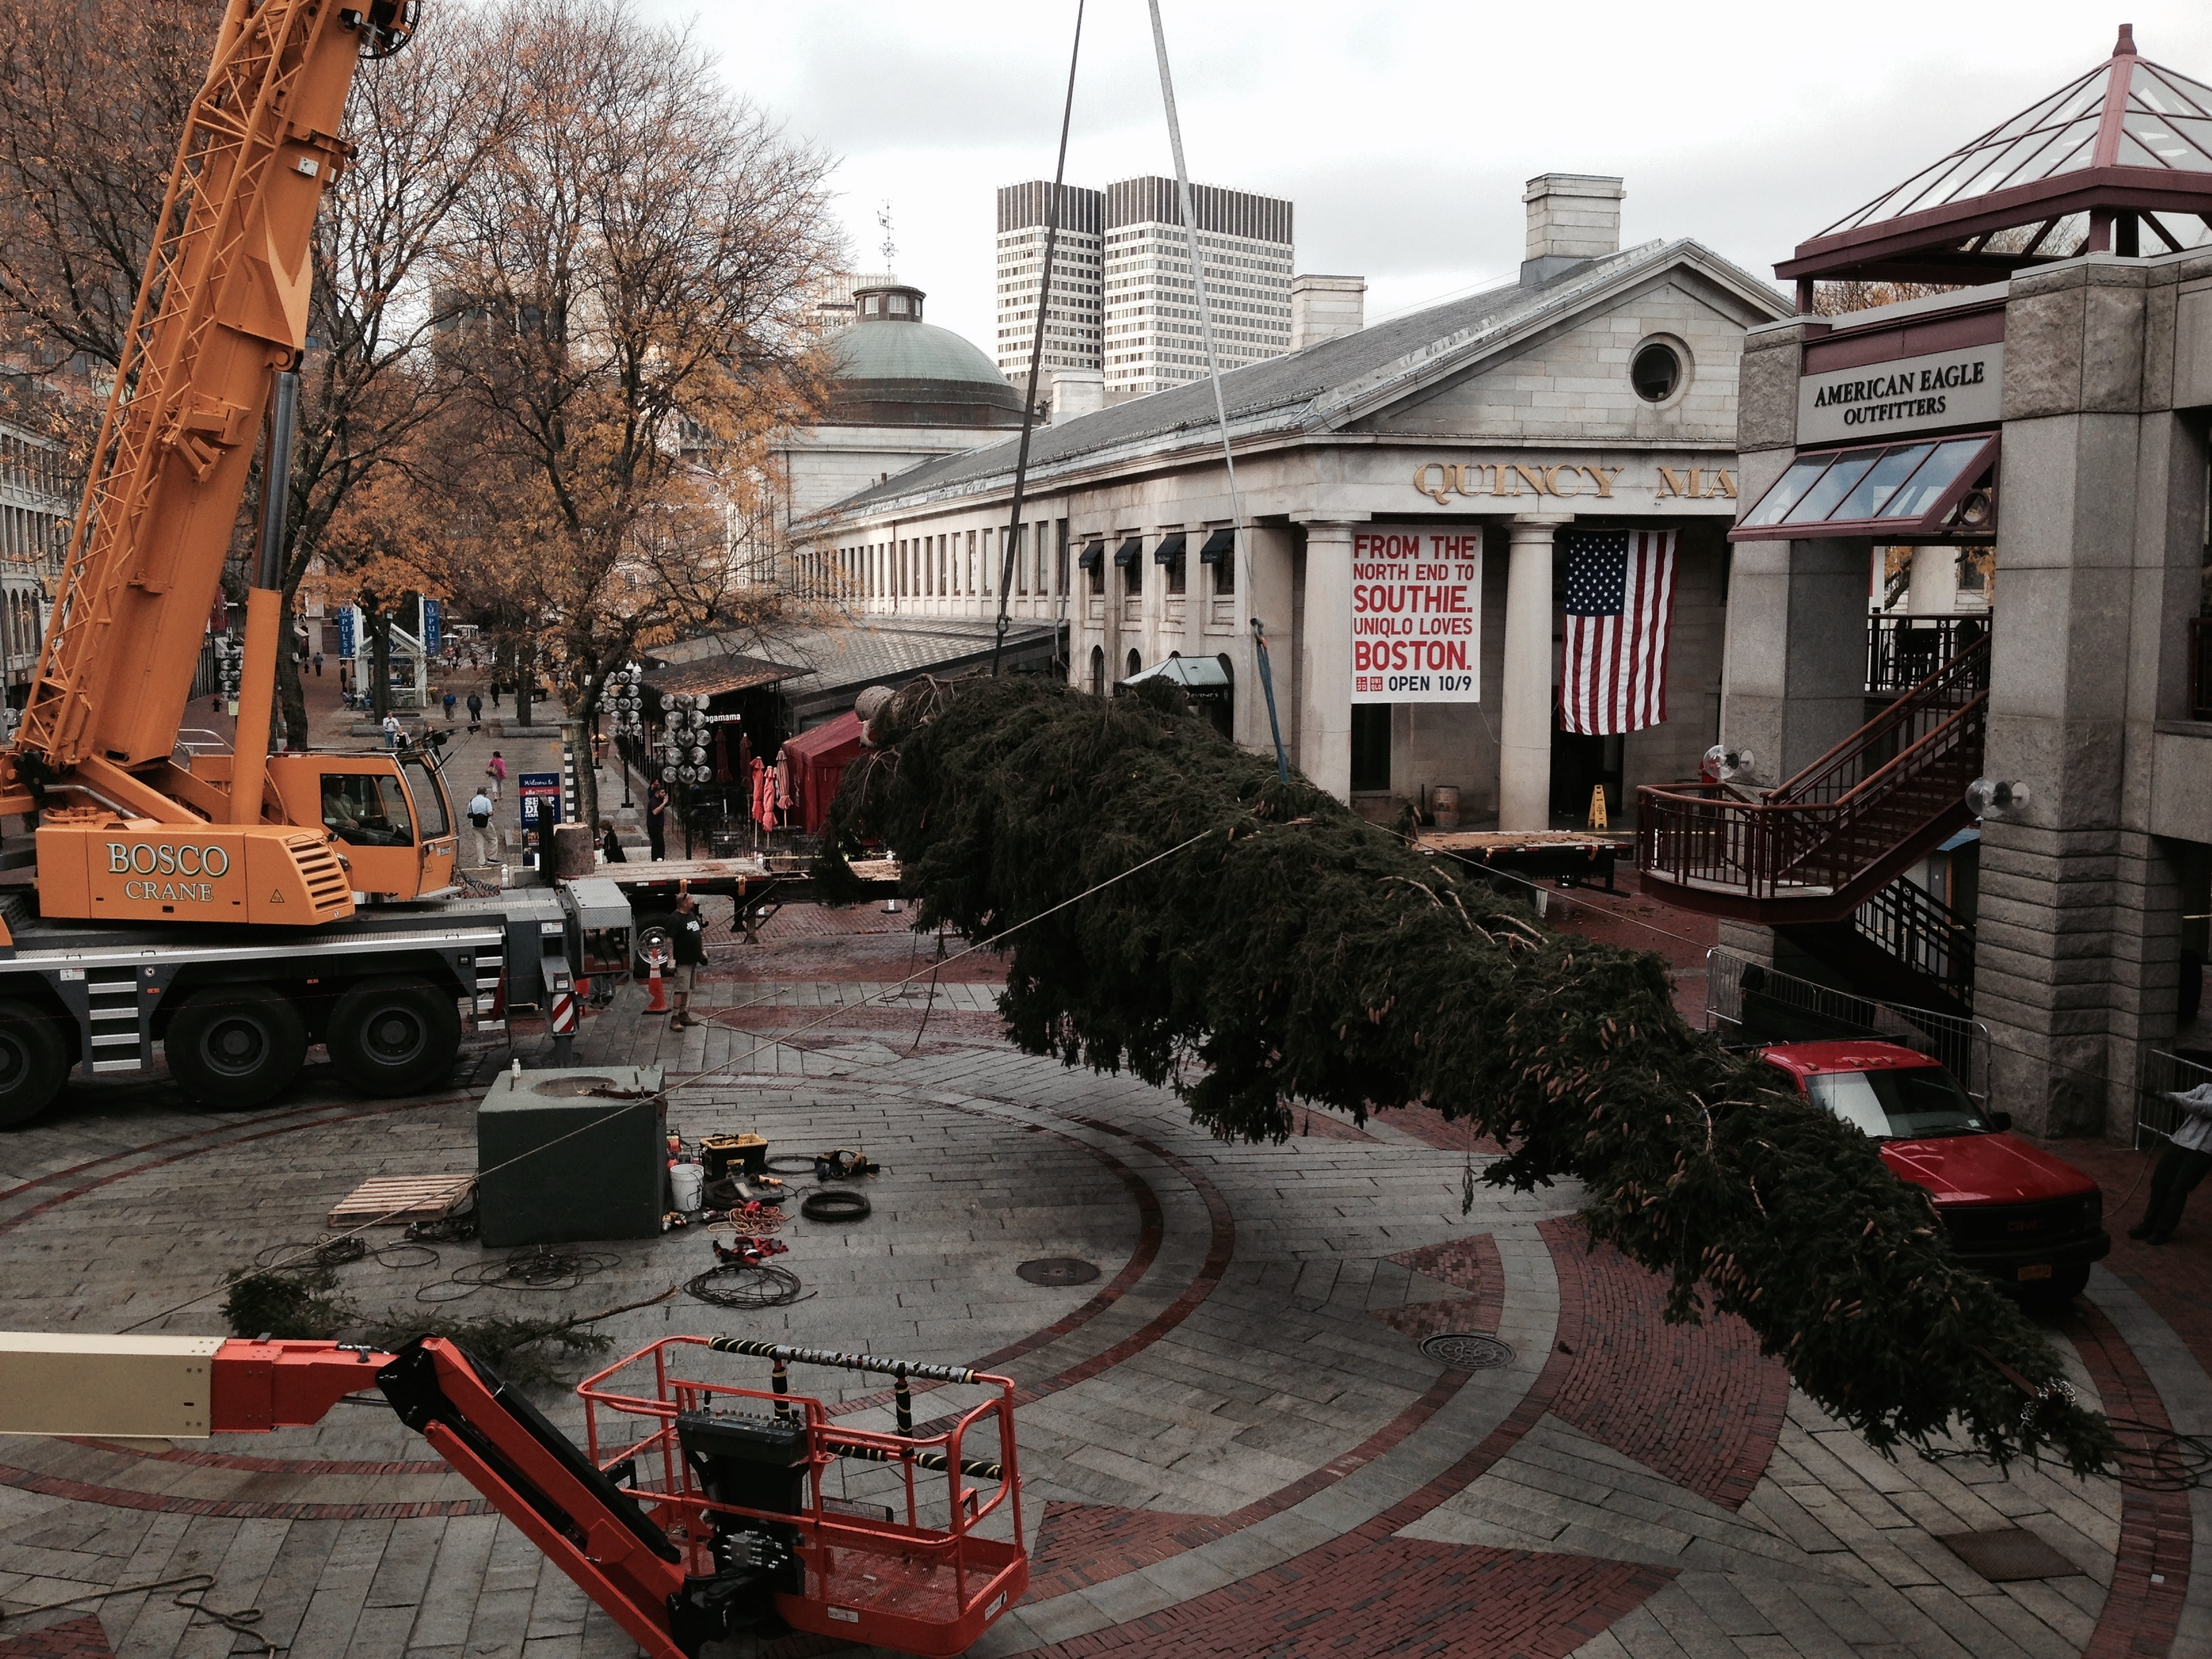 Boston-erecting tied tree